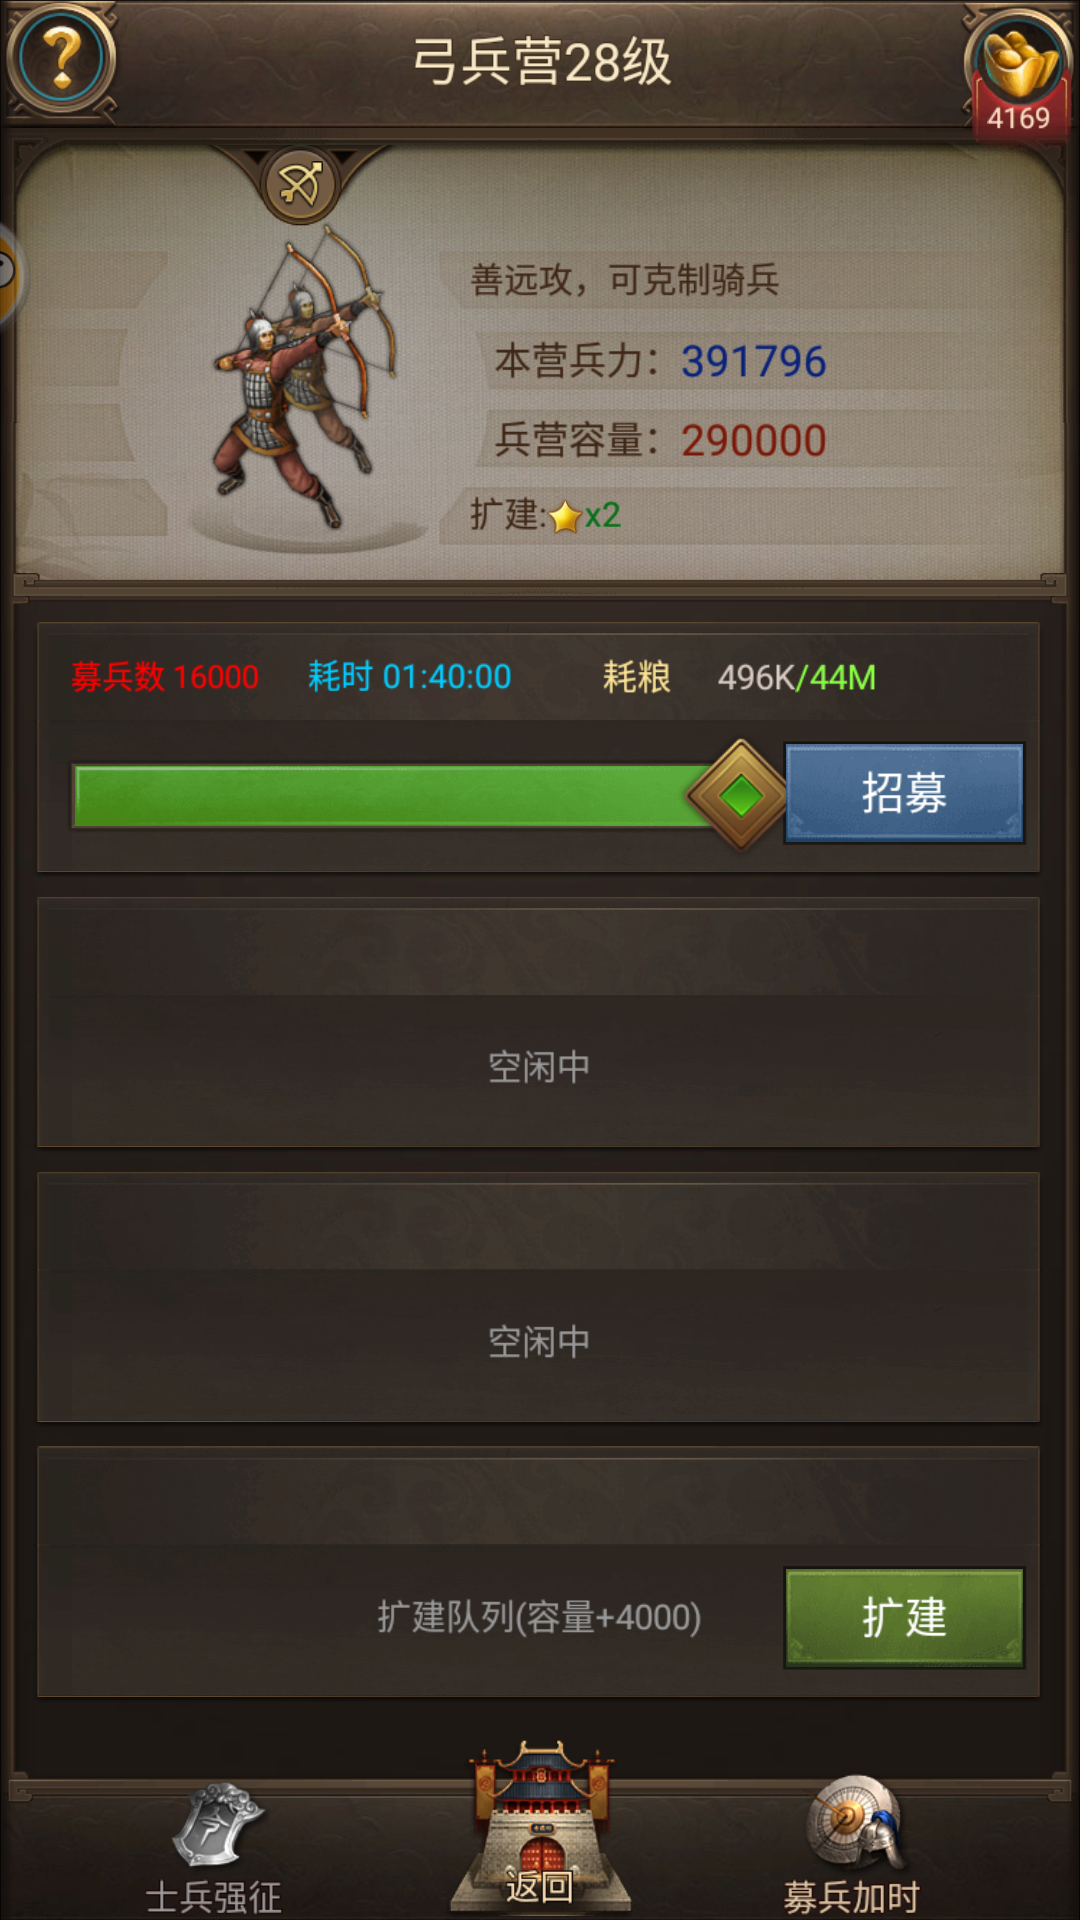 Screenshot_2019-07-11-07-10-04-626_com.juedigame.sgdjl.shoumeng.png